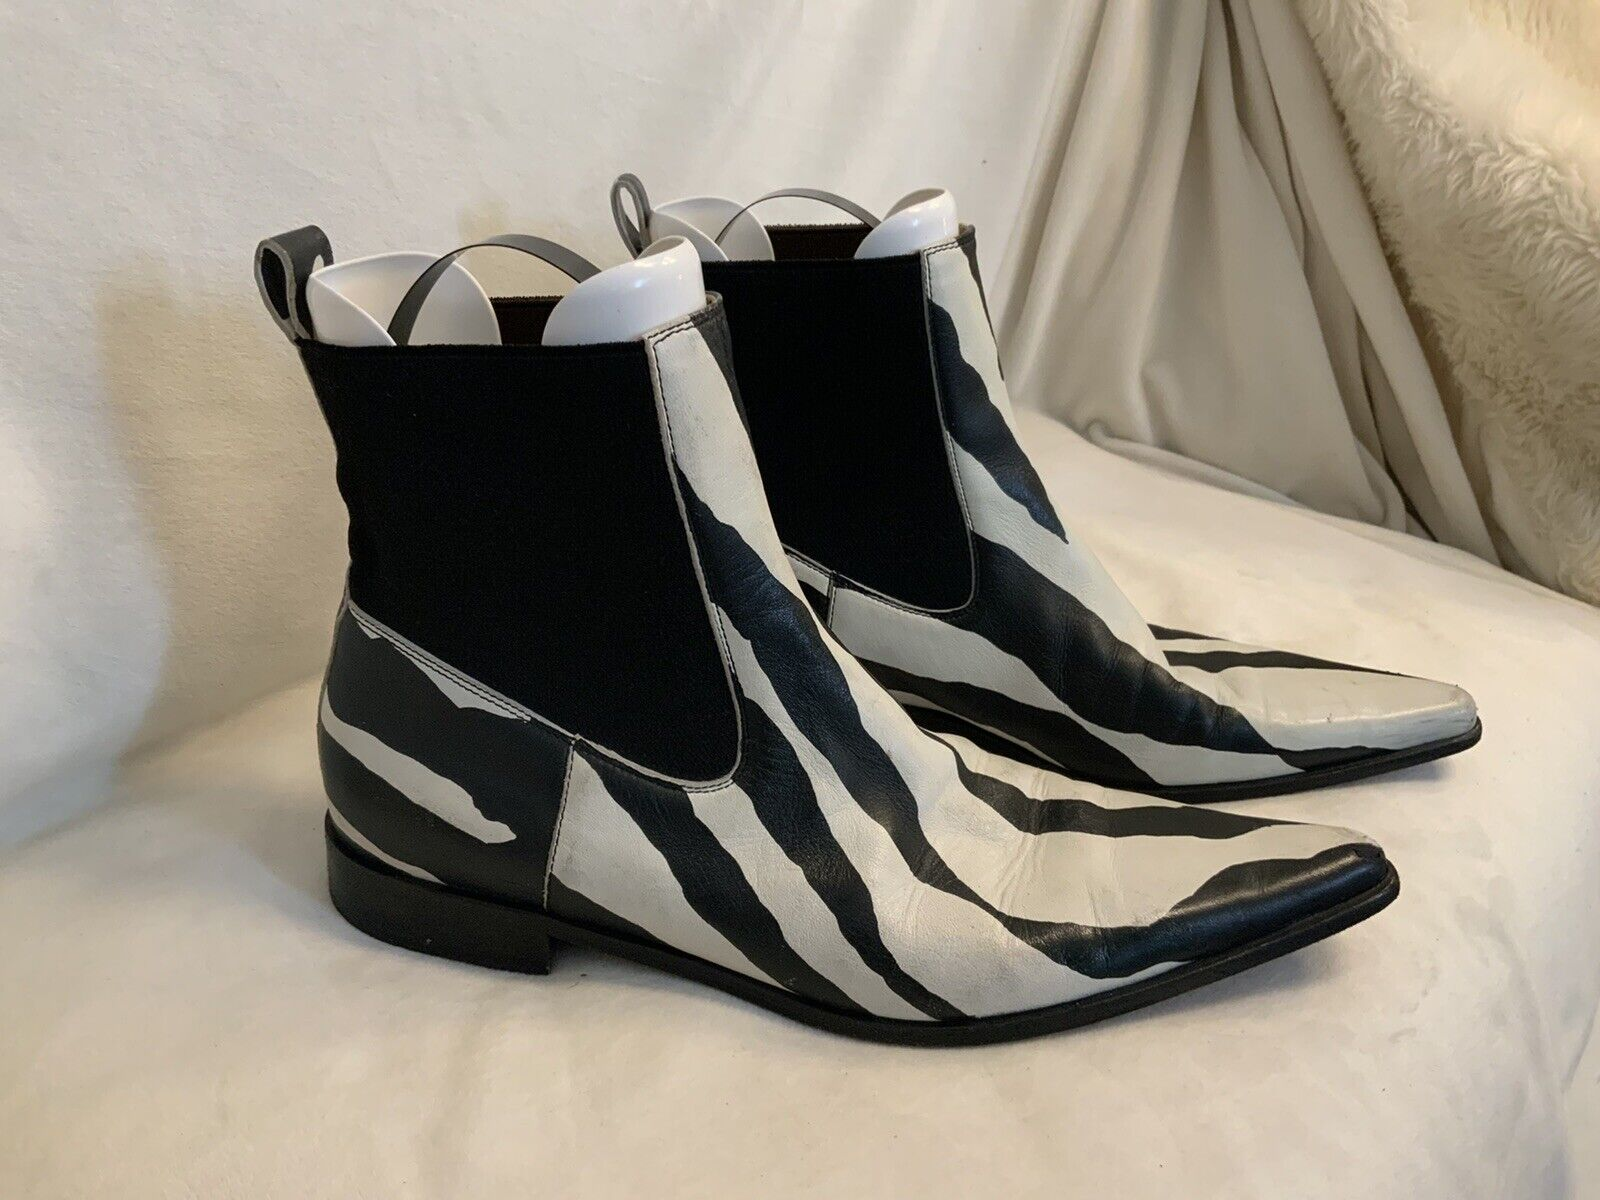 Dolce And Gabbana Ankle Boots Zebra Print Leather  - image 1